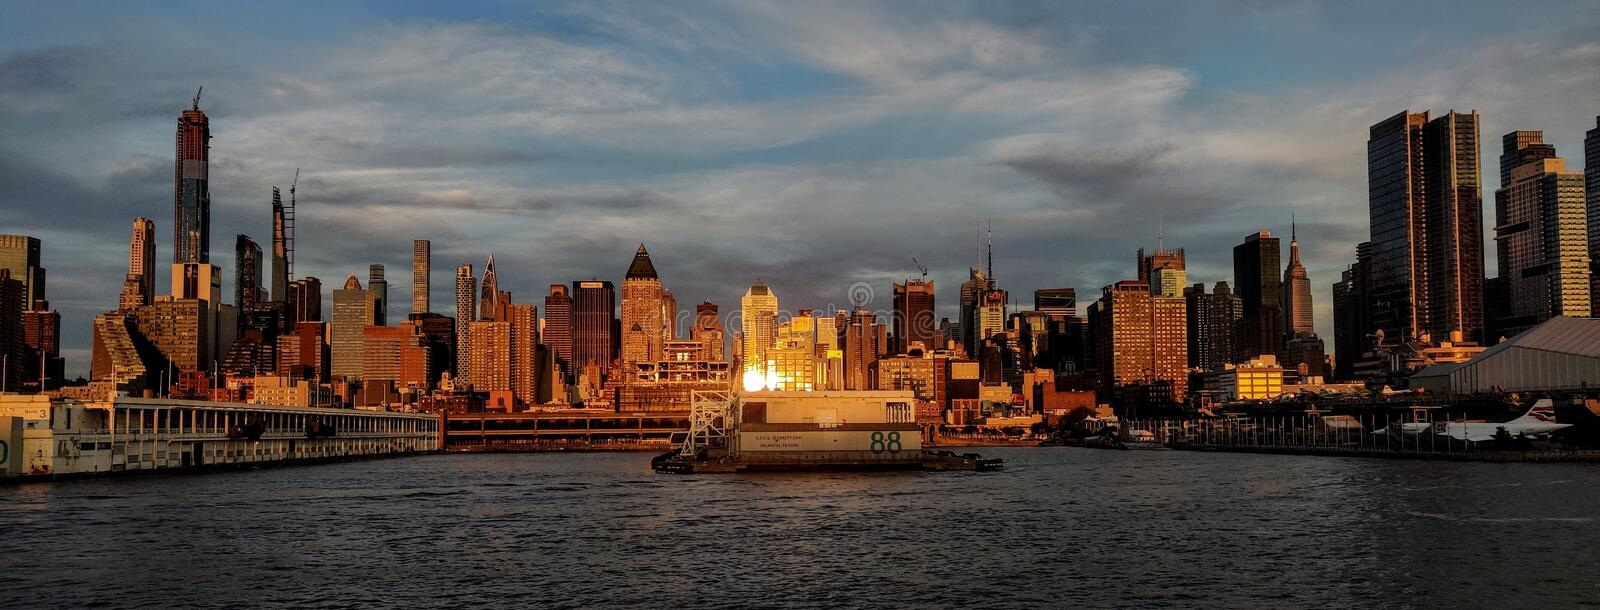 New York City from new Jersey side stock photo